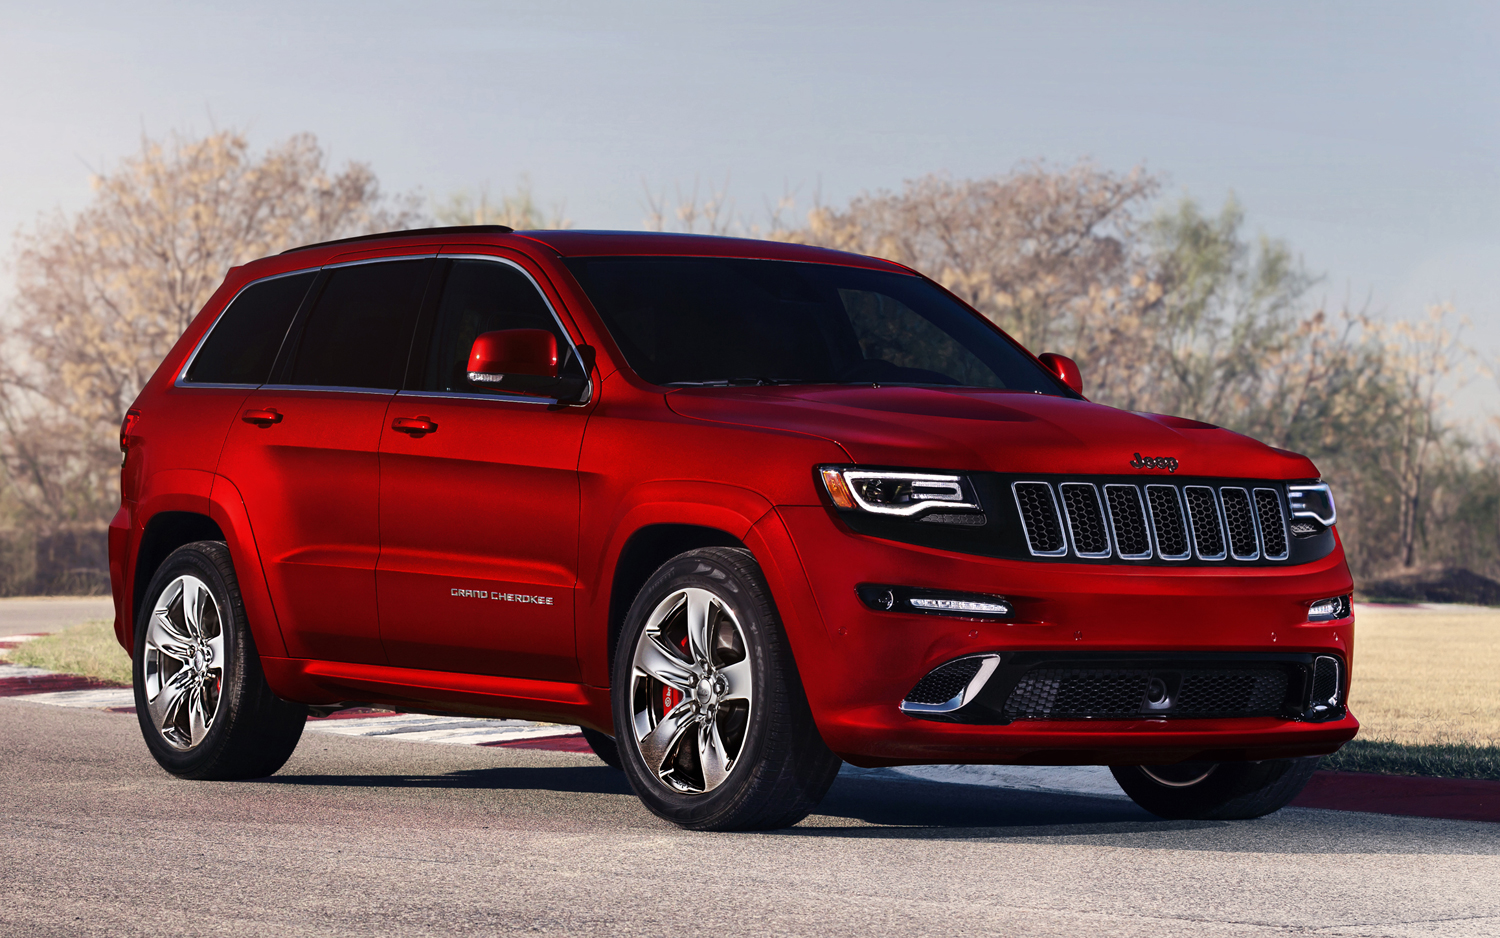 2014 jeep grand cherokee srt red color photo picture image. Black Bedroom Furniture Sets. Home Design Ideas